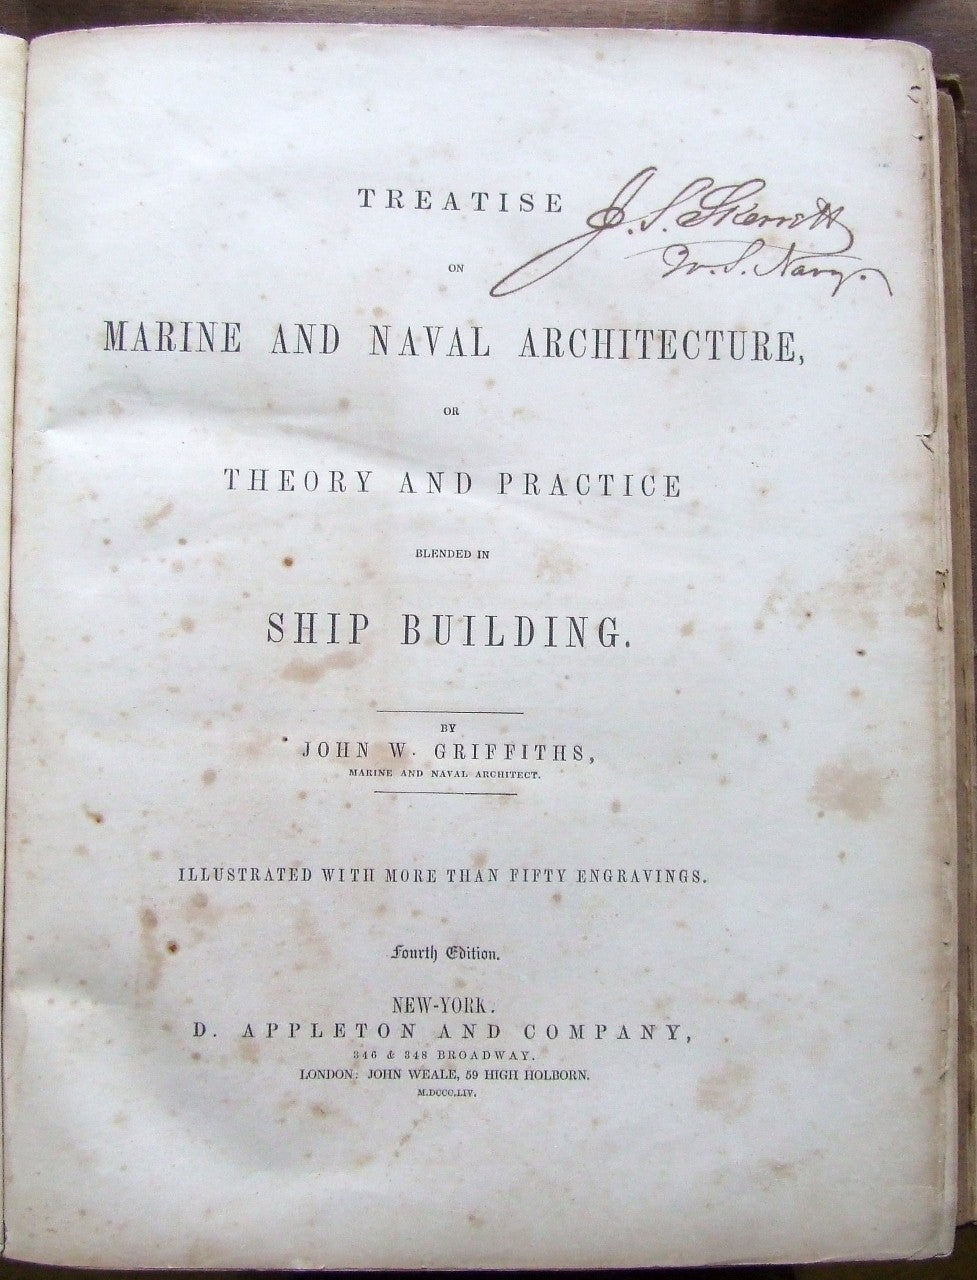 A Treatise on Marine and Naval Architecture, or theory and practice blended in Ship Building      John W. Griffiths